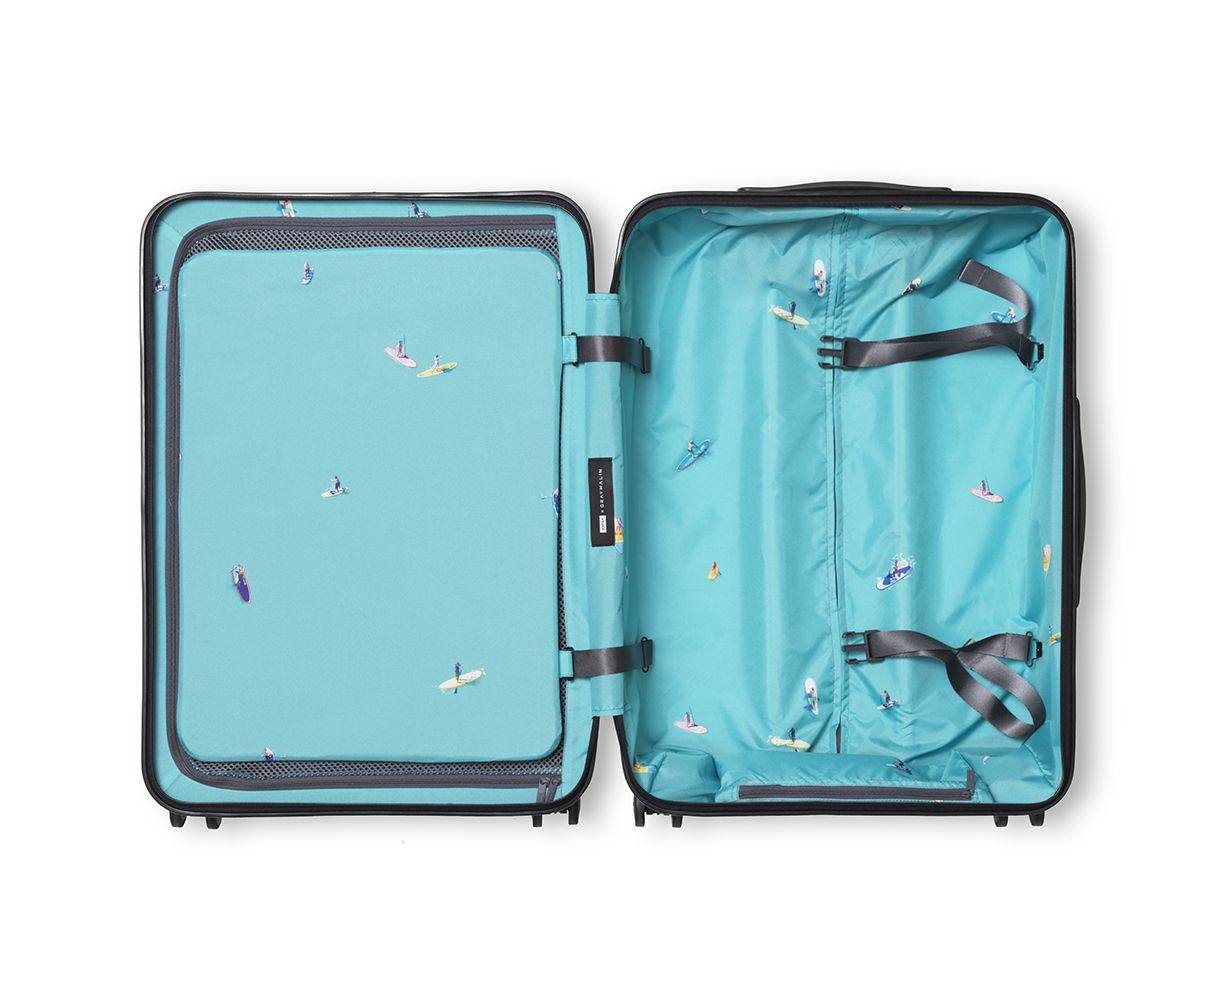 81c0a6f8b72b AWAY Luggage with Limited edition bags in three colors featuring a ...